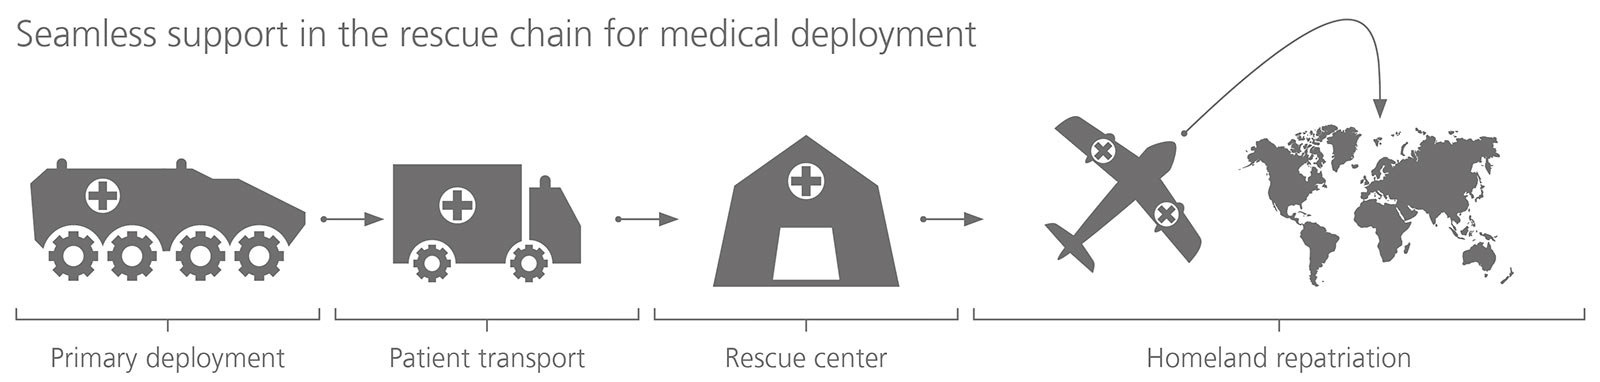 Rescue chain for medical deployment